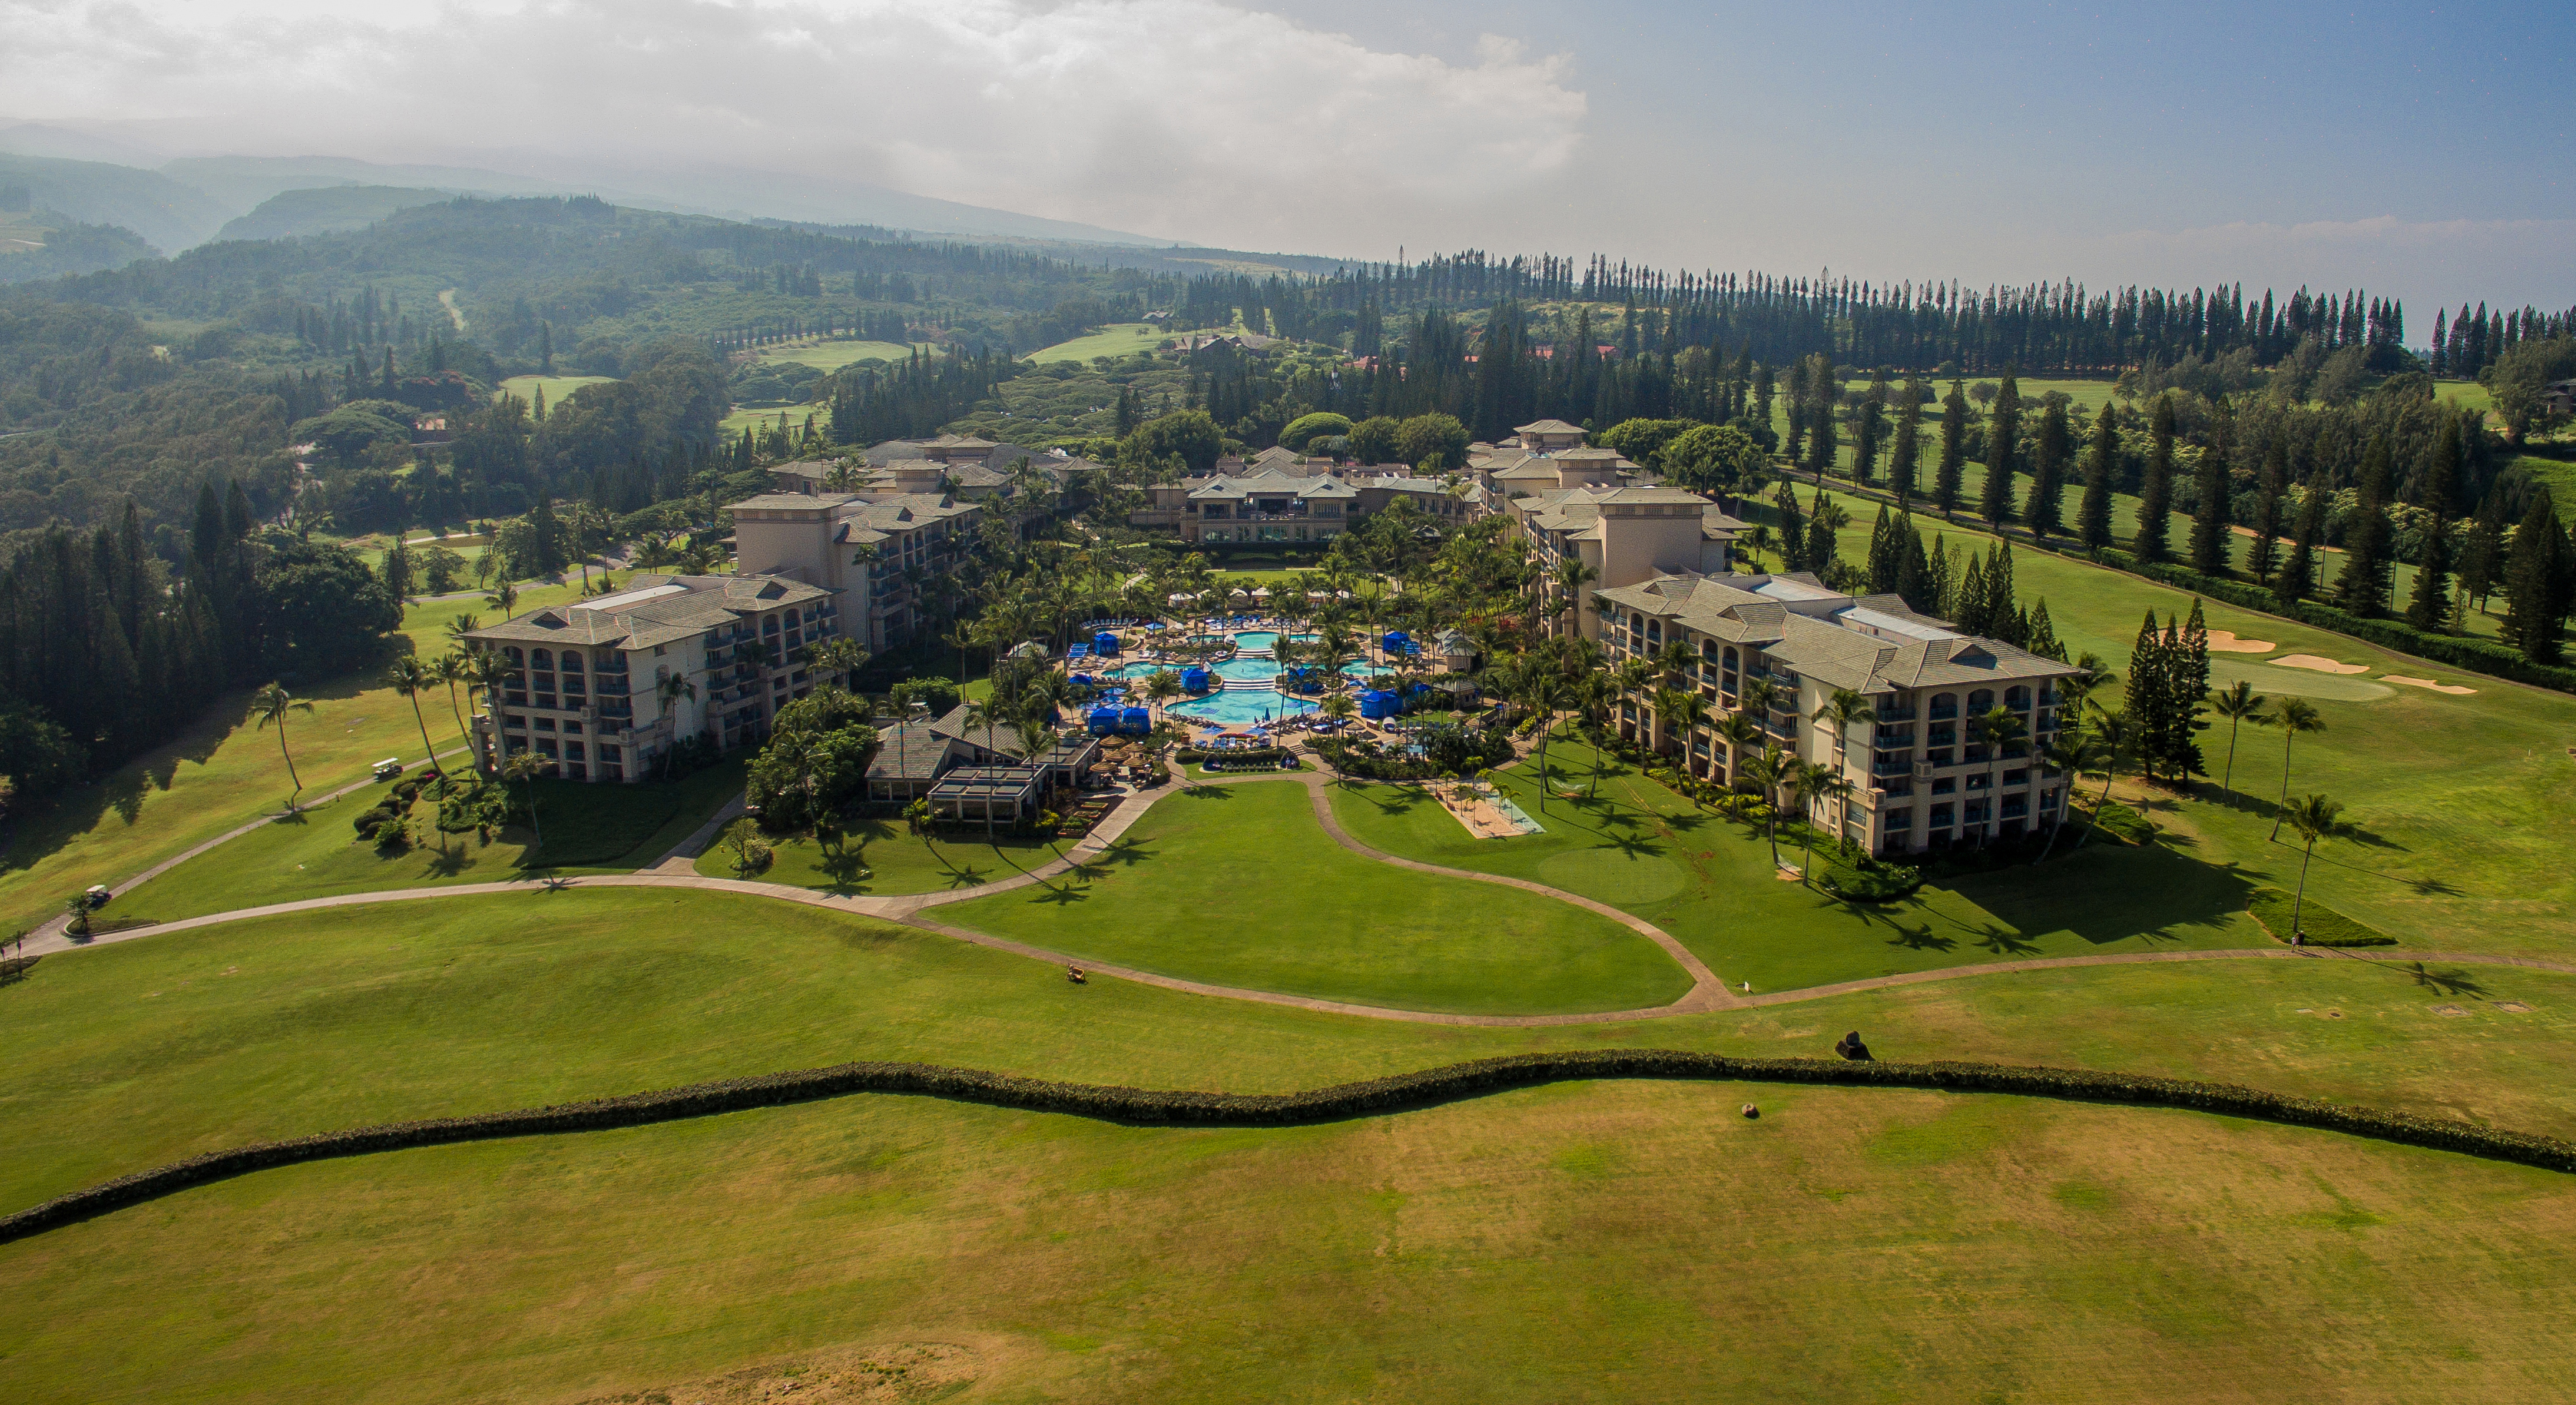 Ritz-Carlton Kapalua Sold to Blackstone Real Estate Partners